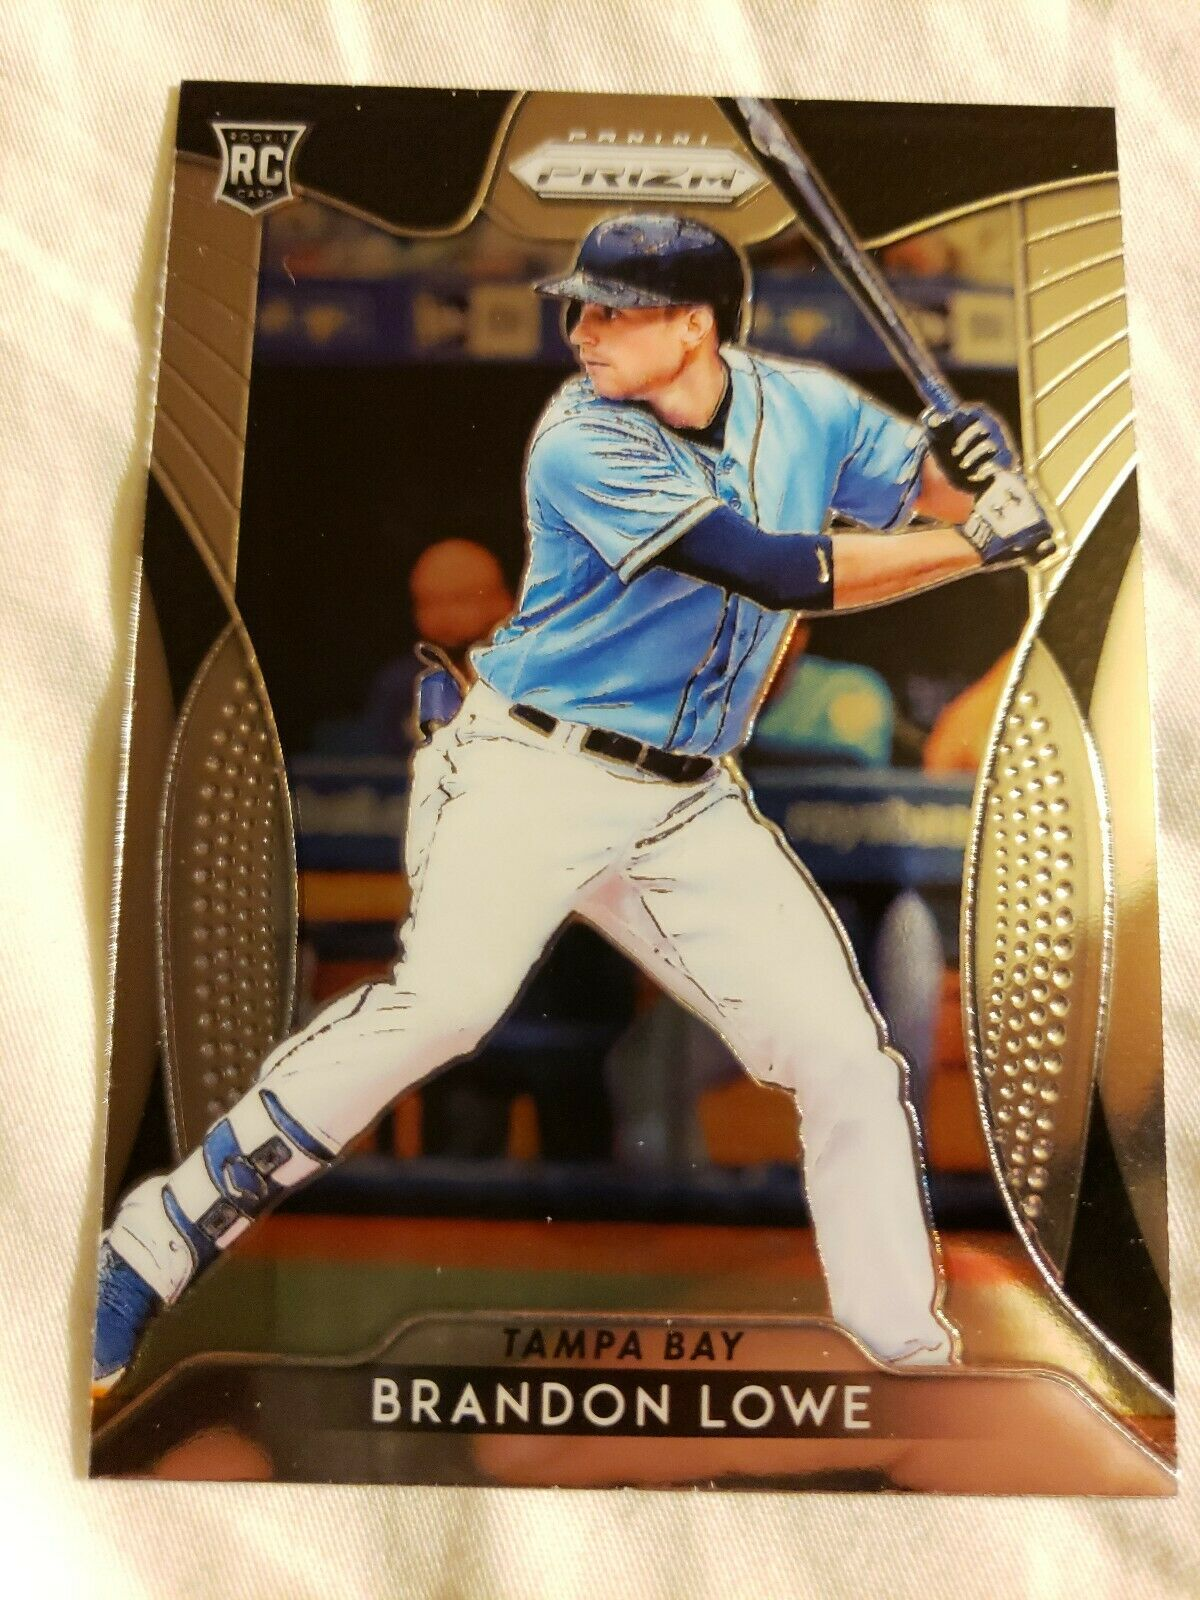 Primary image for 2019 Panini Prizm Brandon Lowe Tampa Bay Rays Rookie Baseball Card #64.